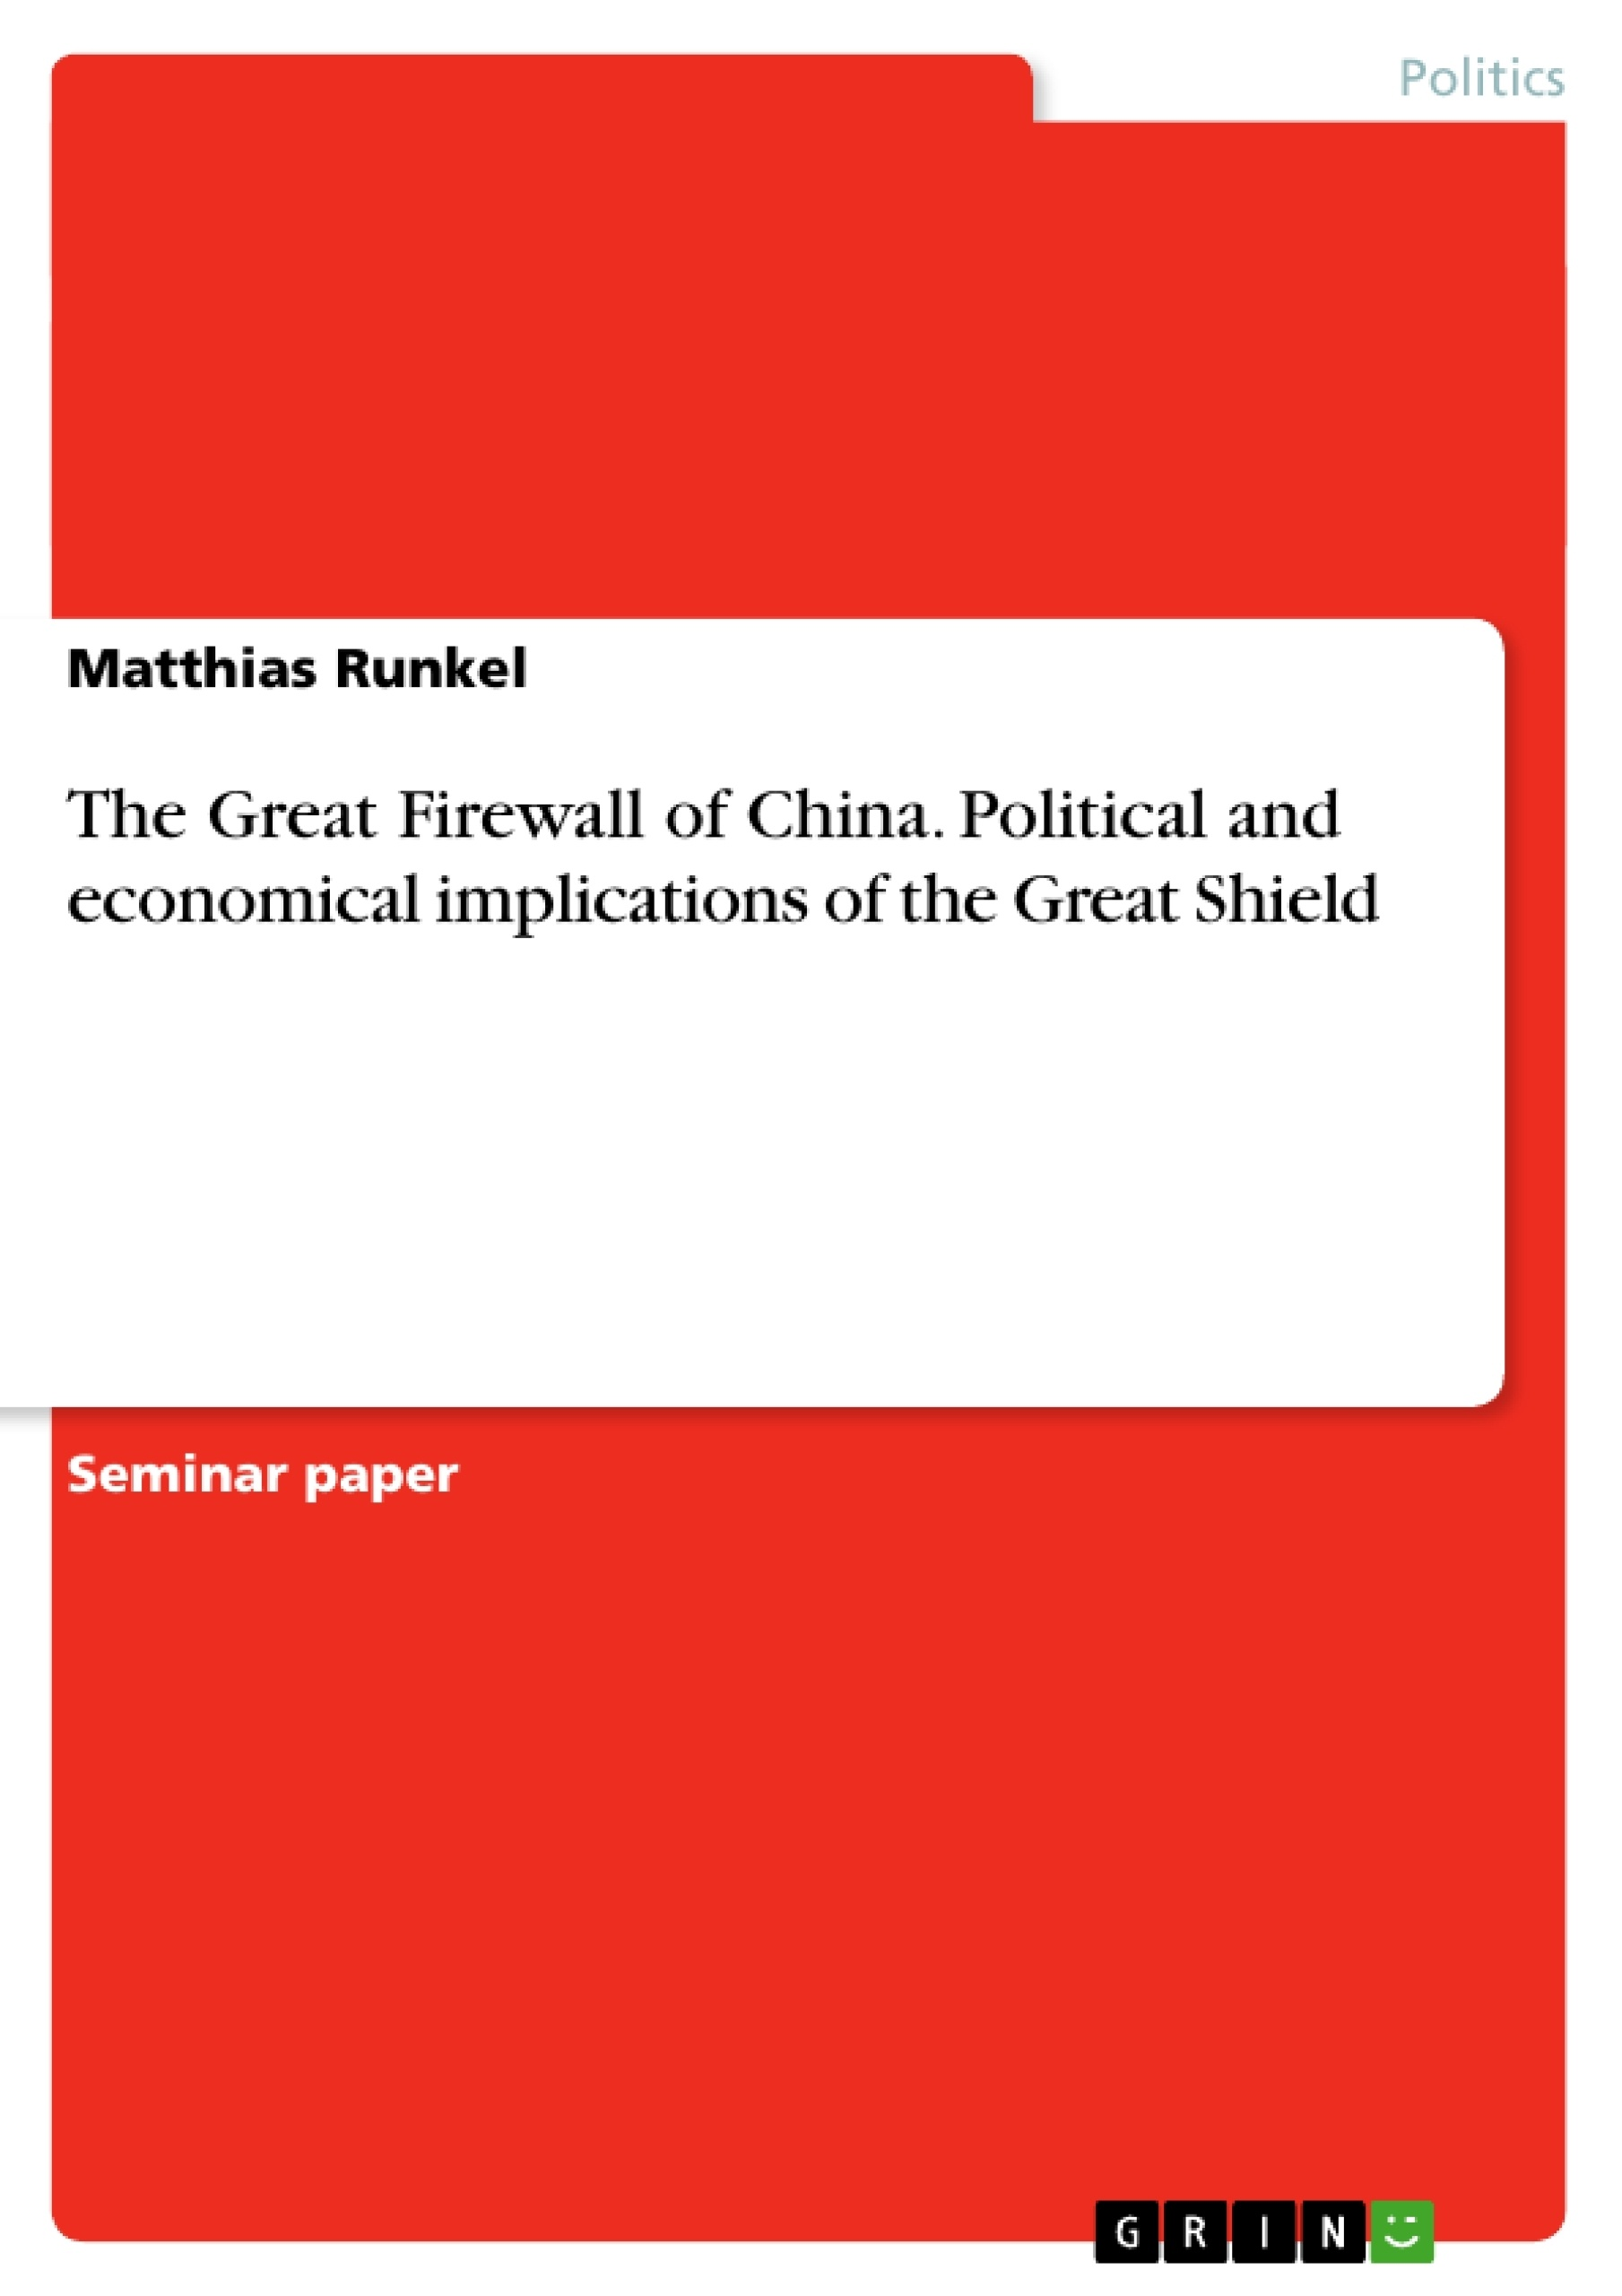 Title: The Great Firewall of China. Political and economical implications of the Great Shield